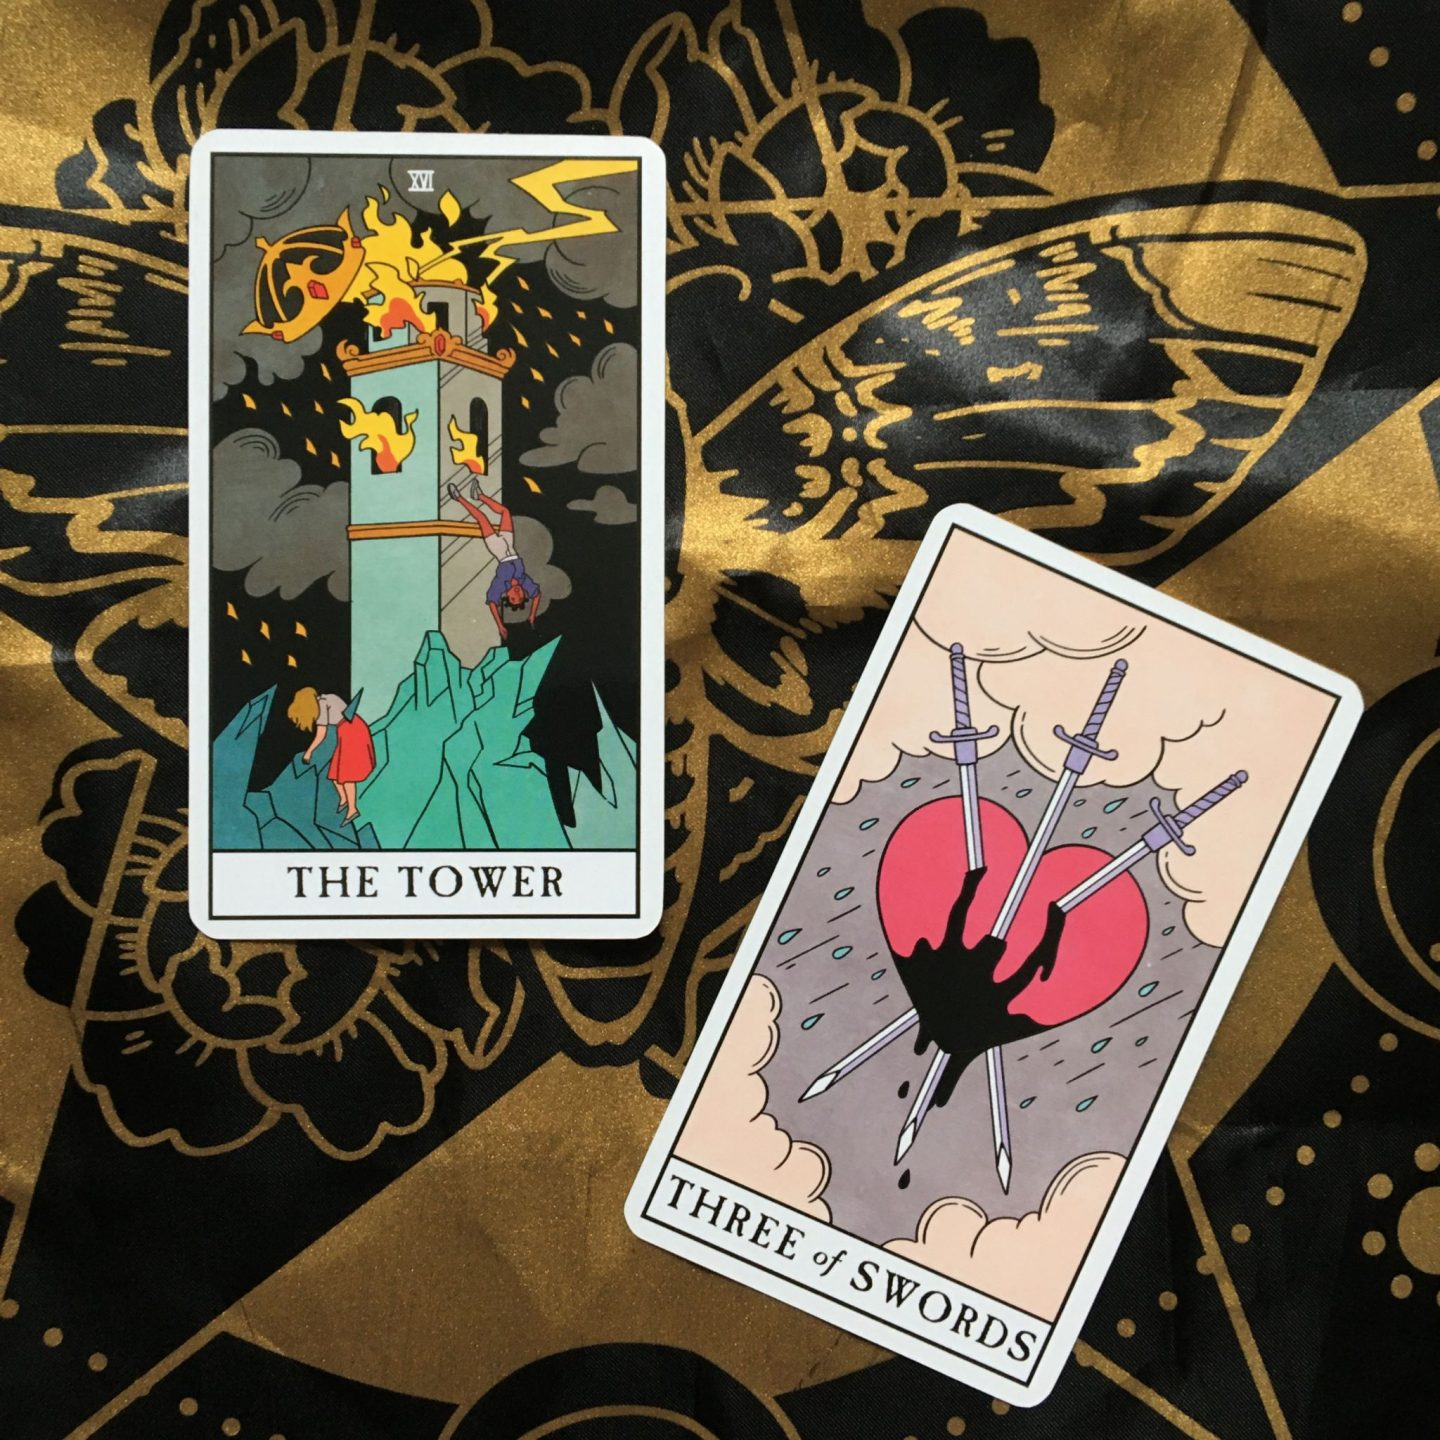 Two Card Tarot Spread: The Tower and Three of Swords from Modern Witch Tarot